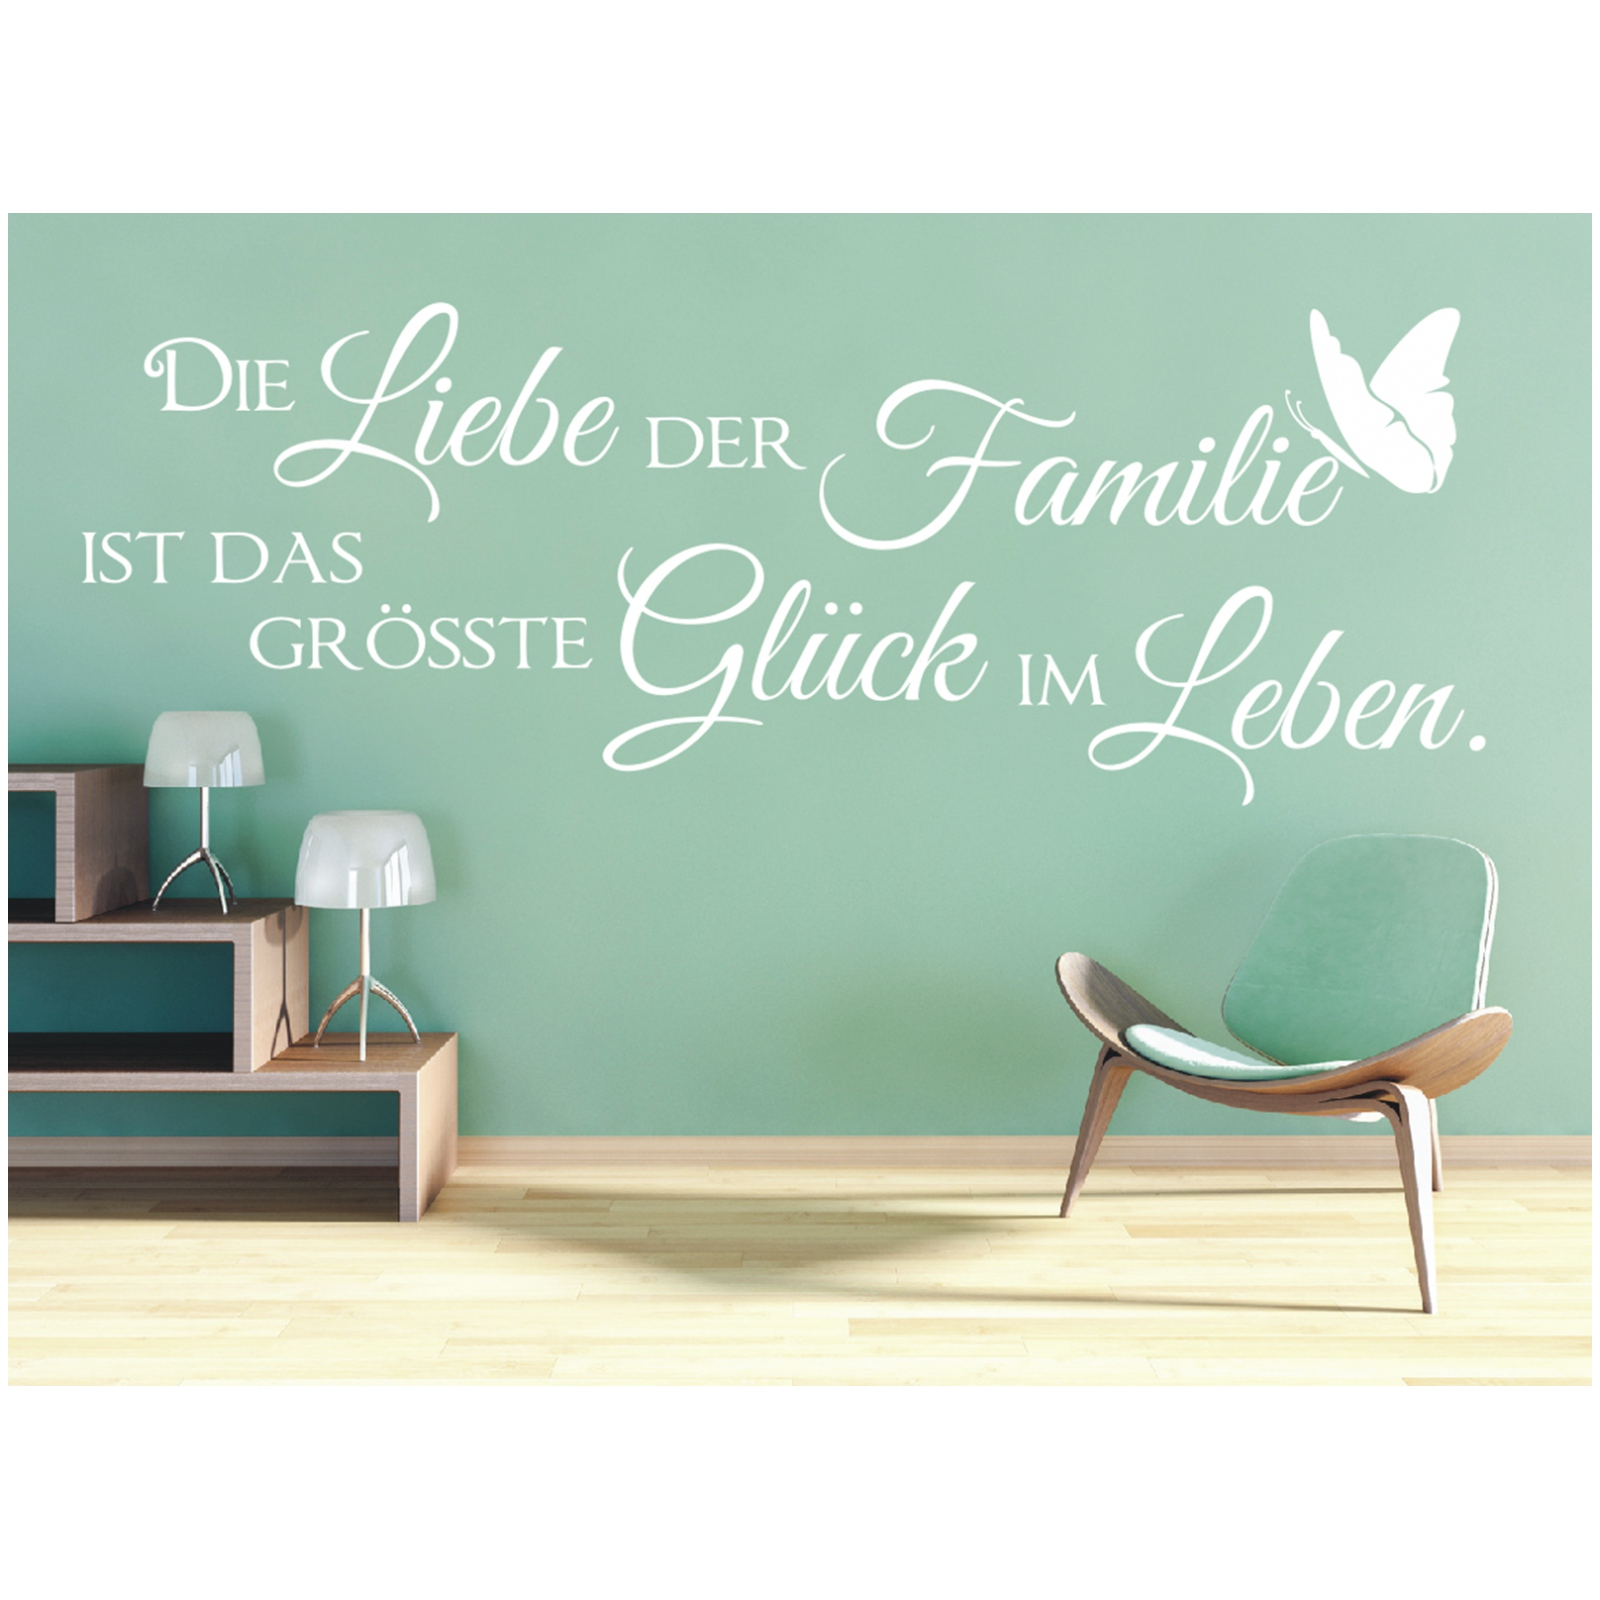 x374 wandtattoo spruch die liebe der familie gl ck leben sticker wandaufkleber ebay. Black Bedroom Furniture Sets. Home Design Ideas